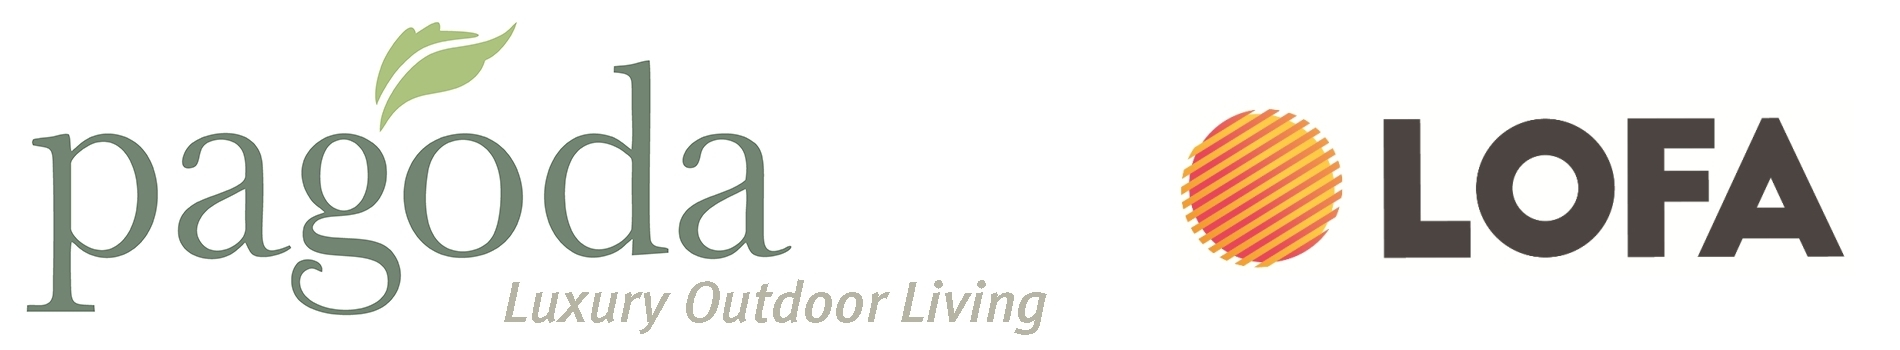 Pagoda Luxury Outdoor Living